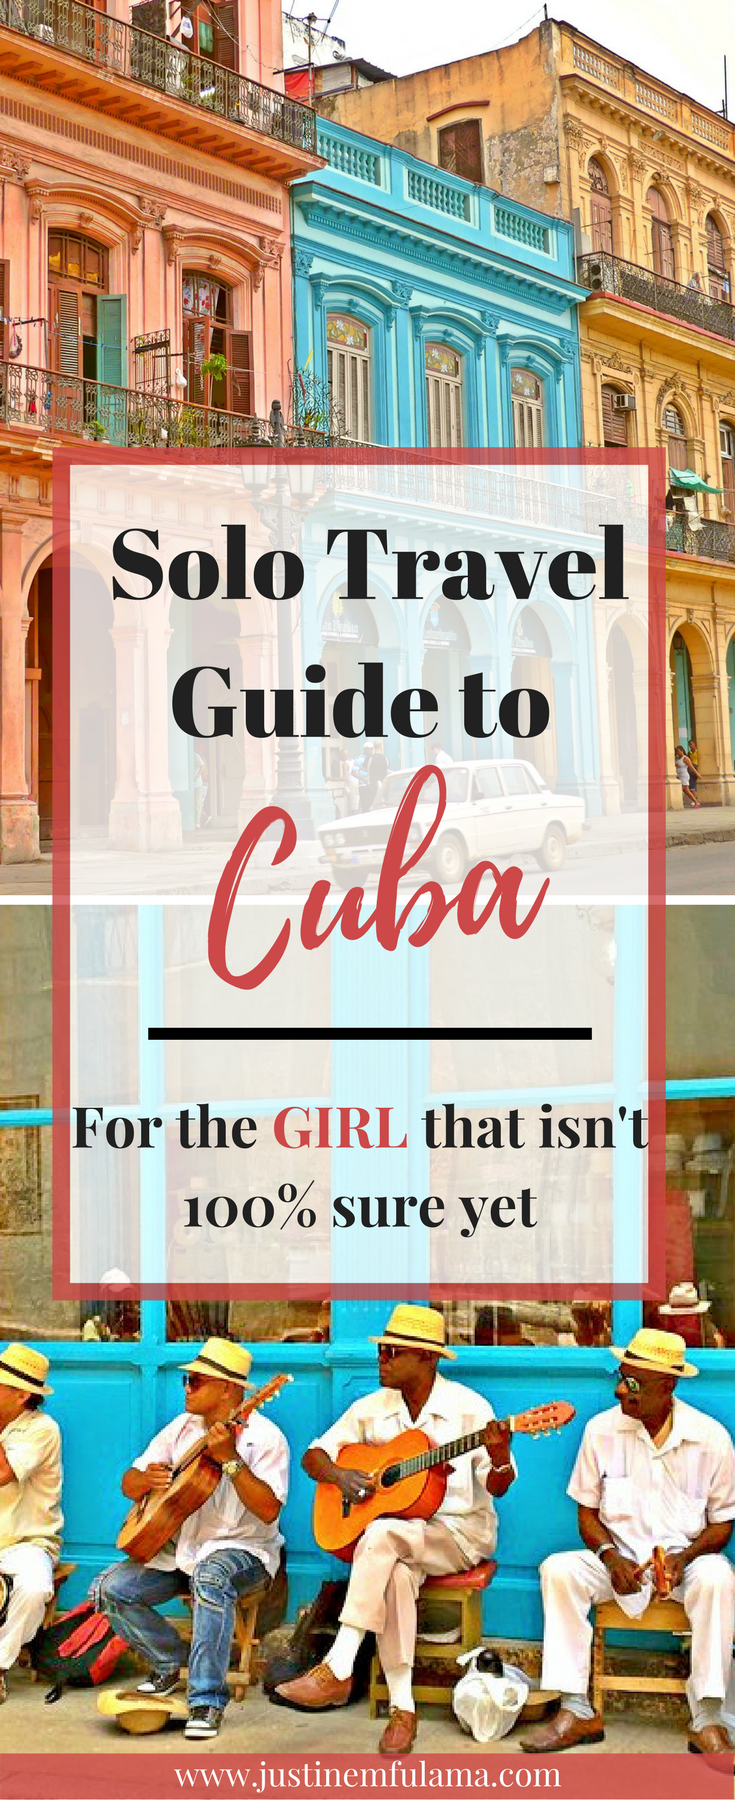 Solo Travel Guide to Cuba for female travelers